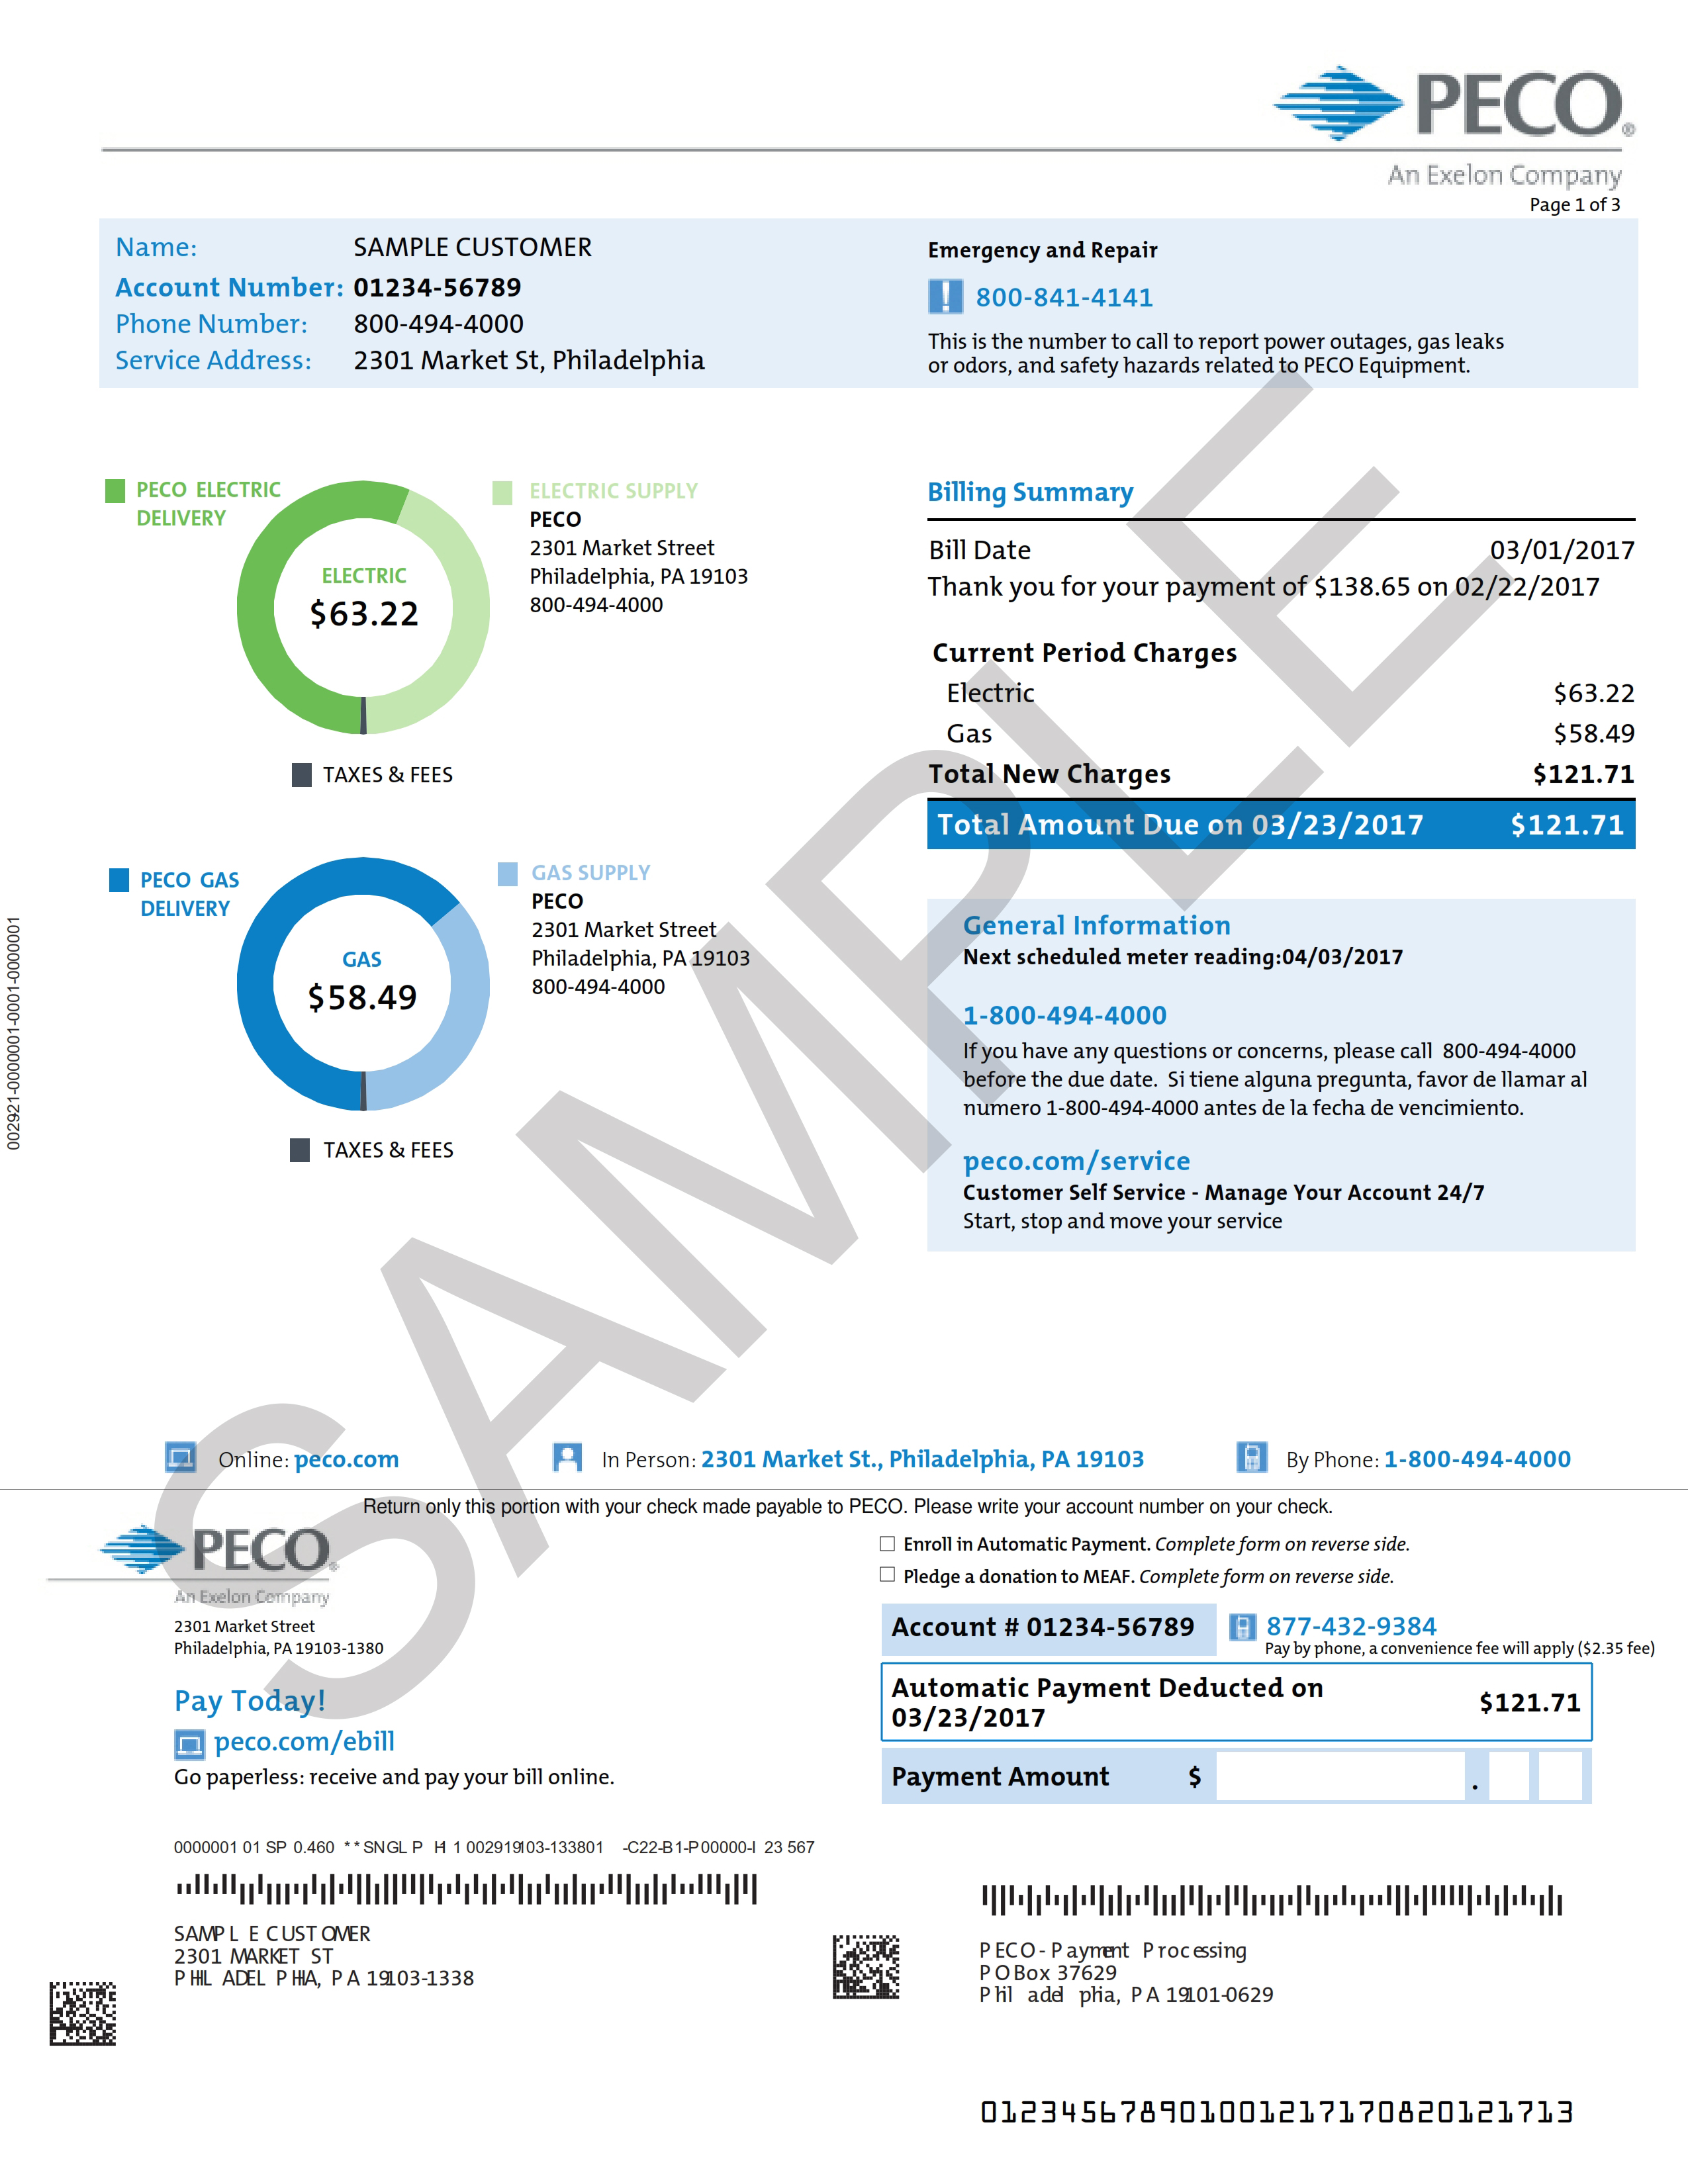 peco telephone number Sample Home Electric and Gas Bill | PECO - An Exelon Company